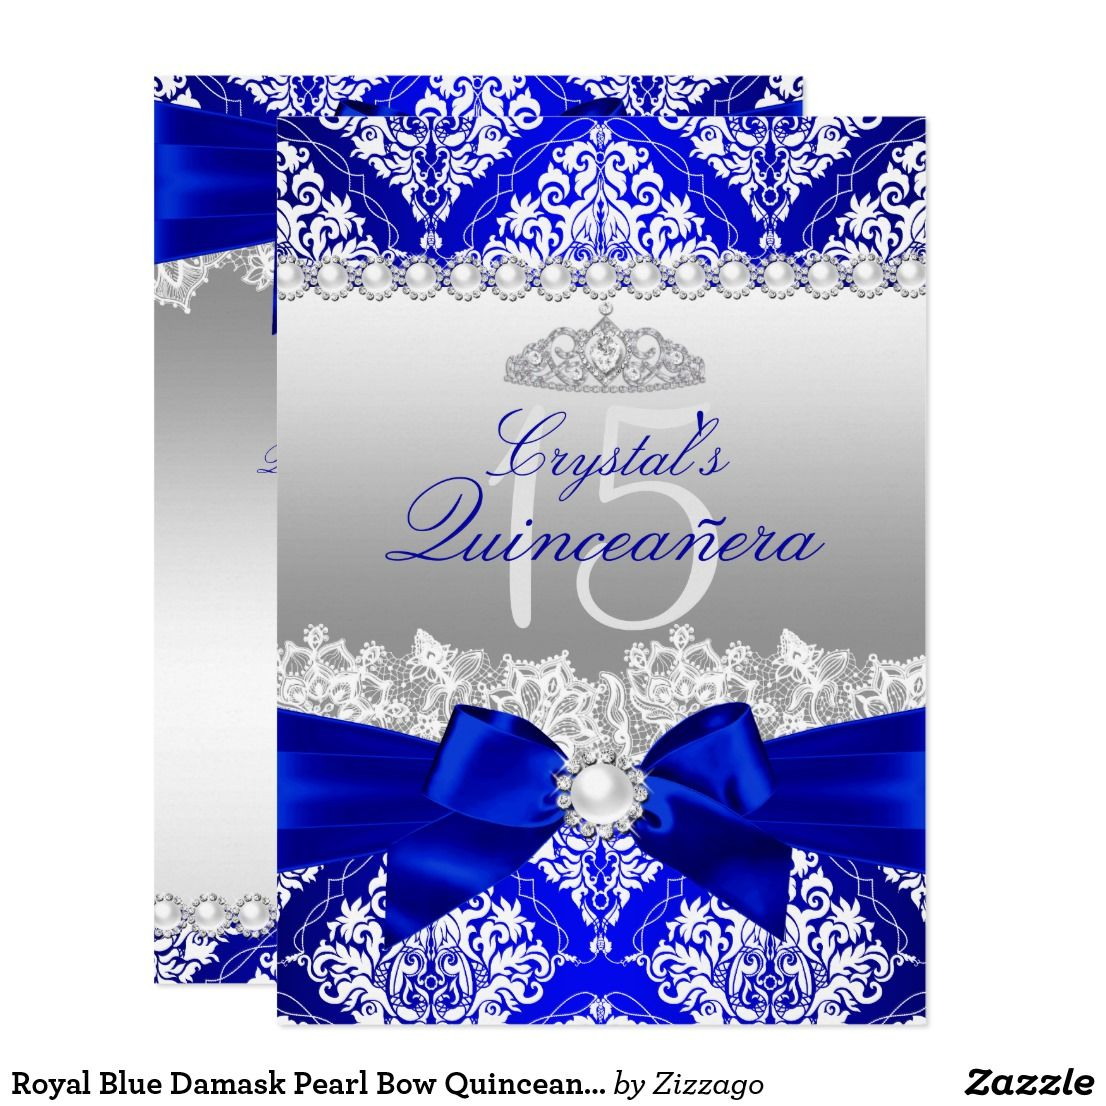 Royal Blue Damask Pearl Bow Quinceanera Invite | Quinceanera ideas ...